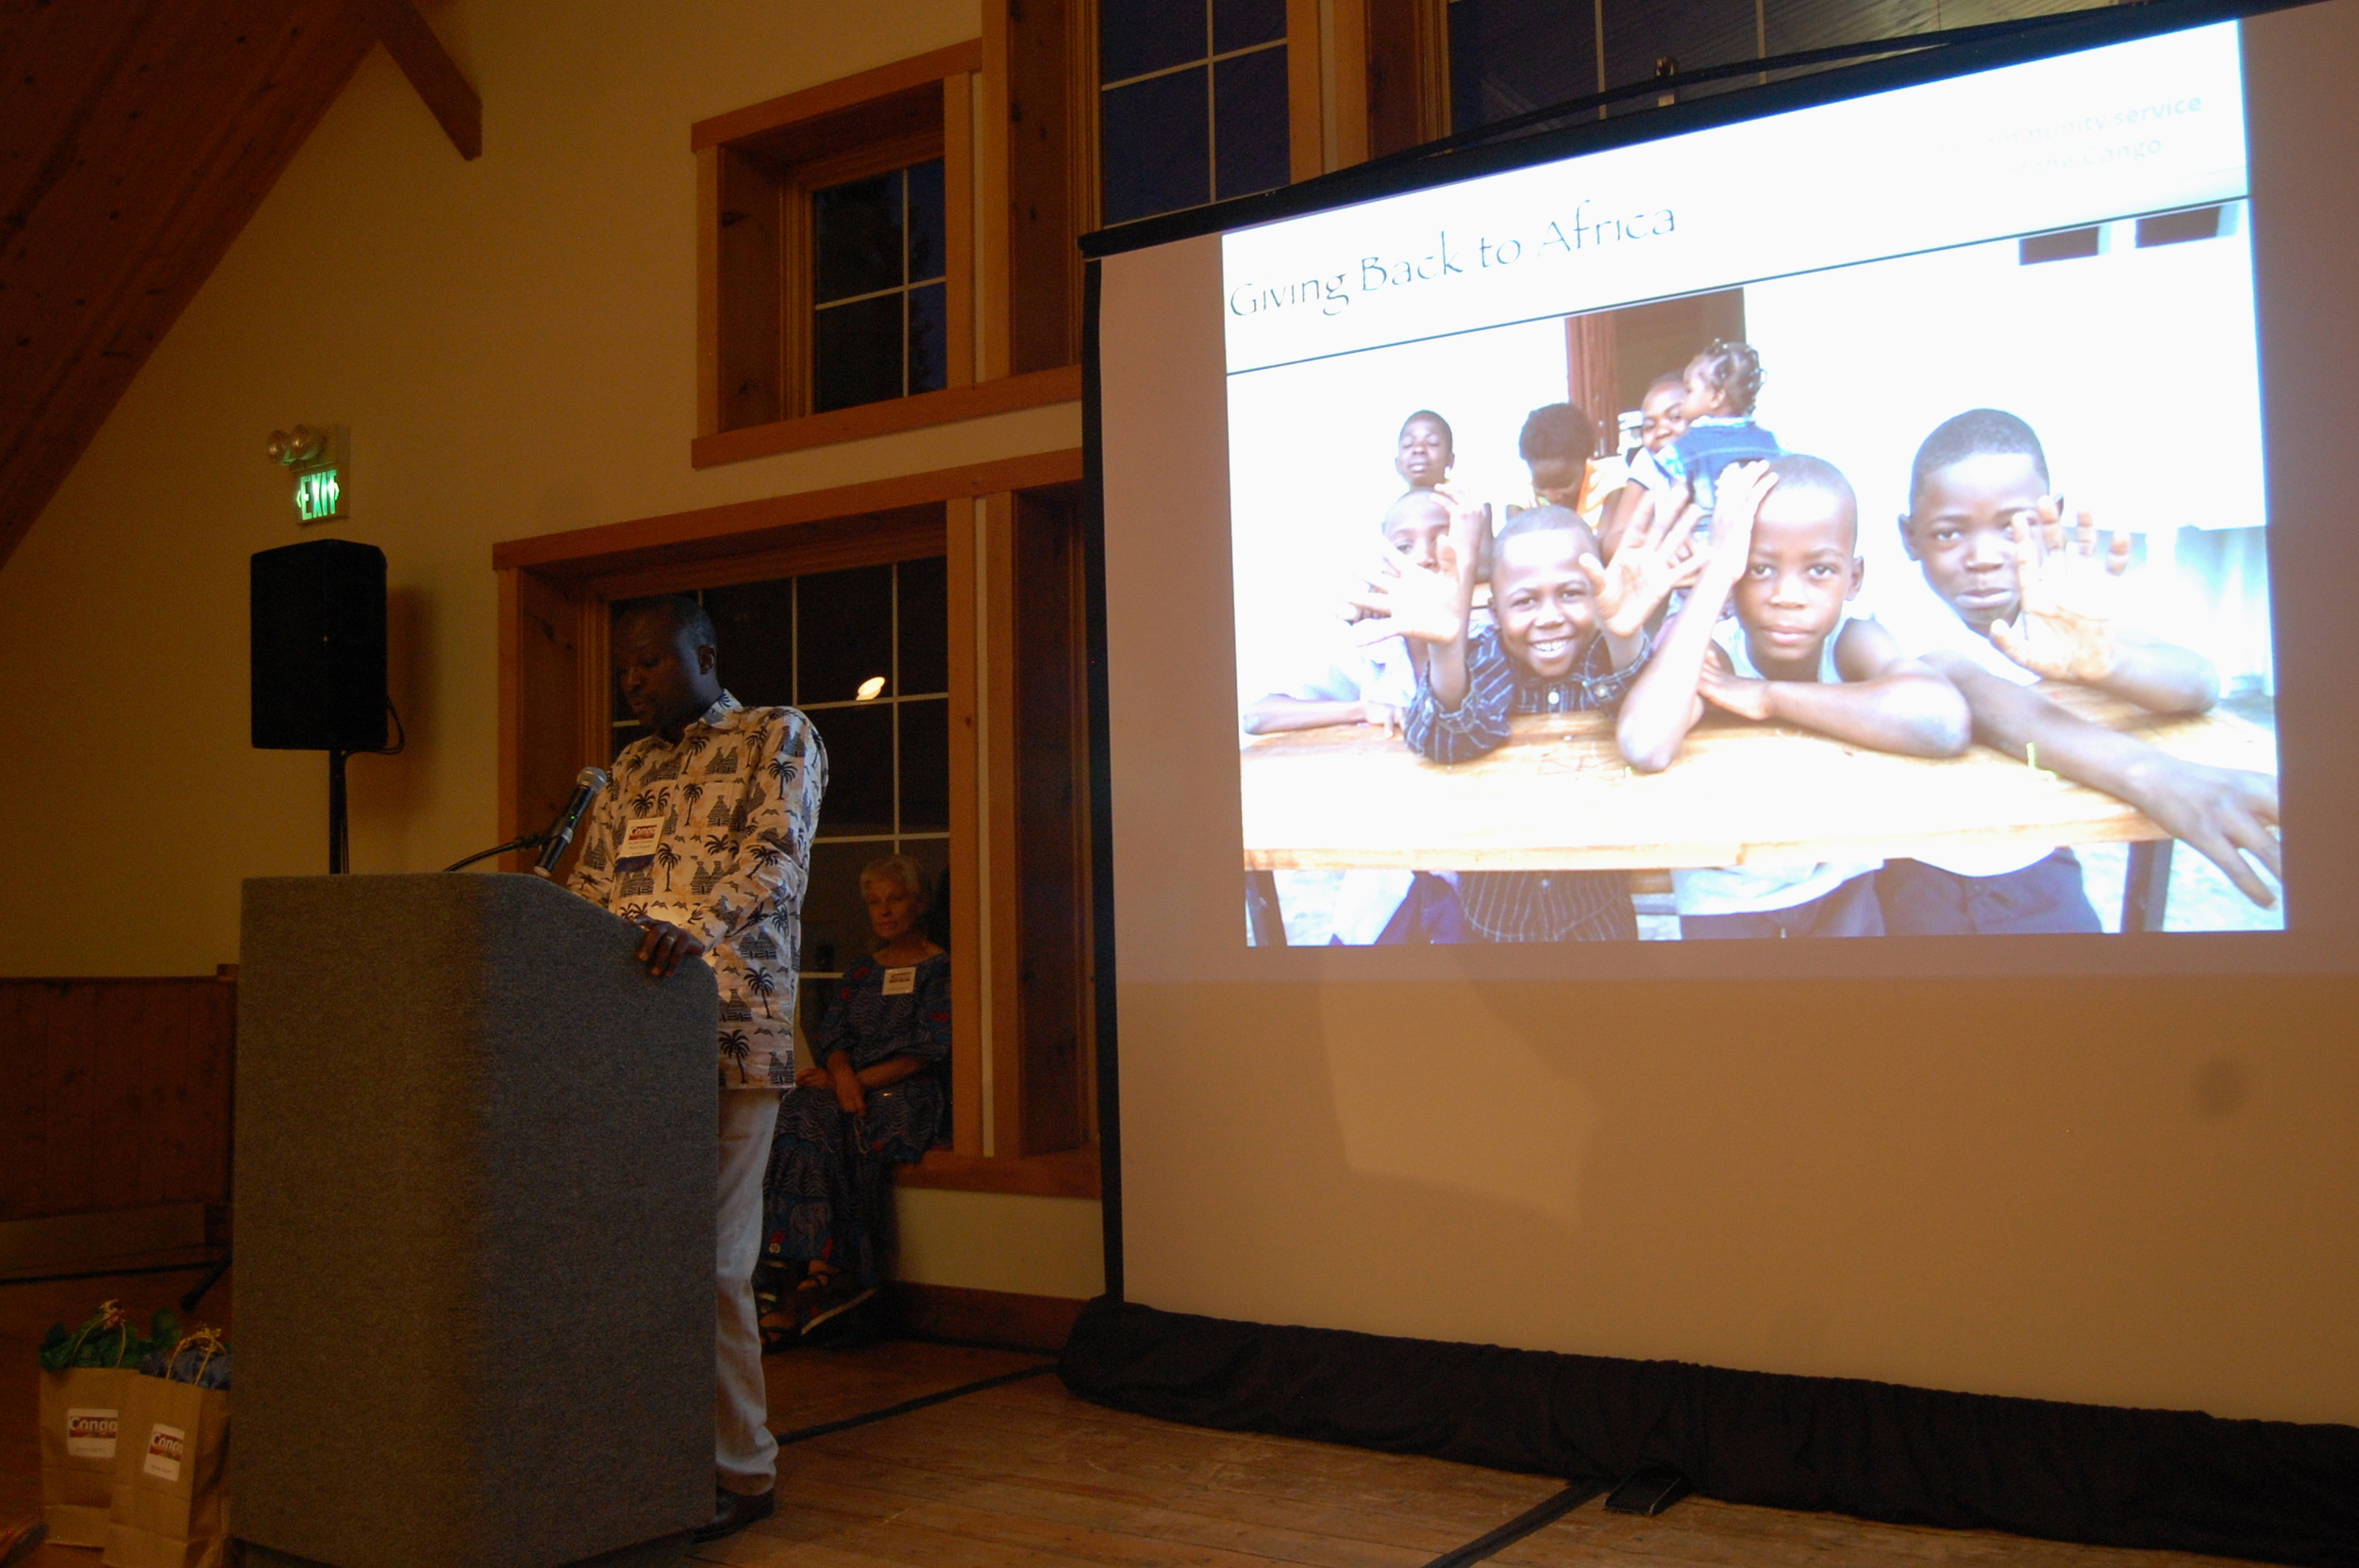 Dr. Jerry Kindomba, Project Manager, talks with us about his vision and work in DR Congo